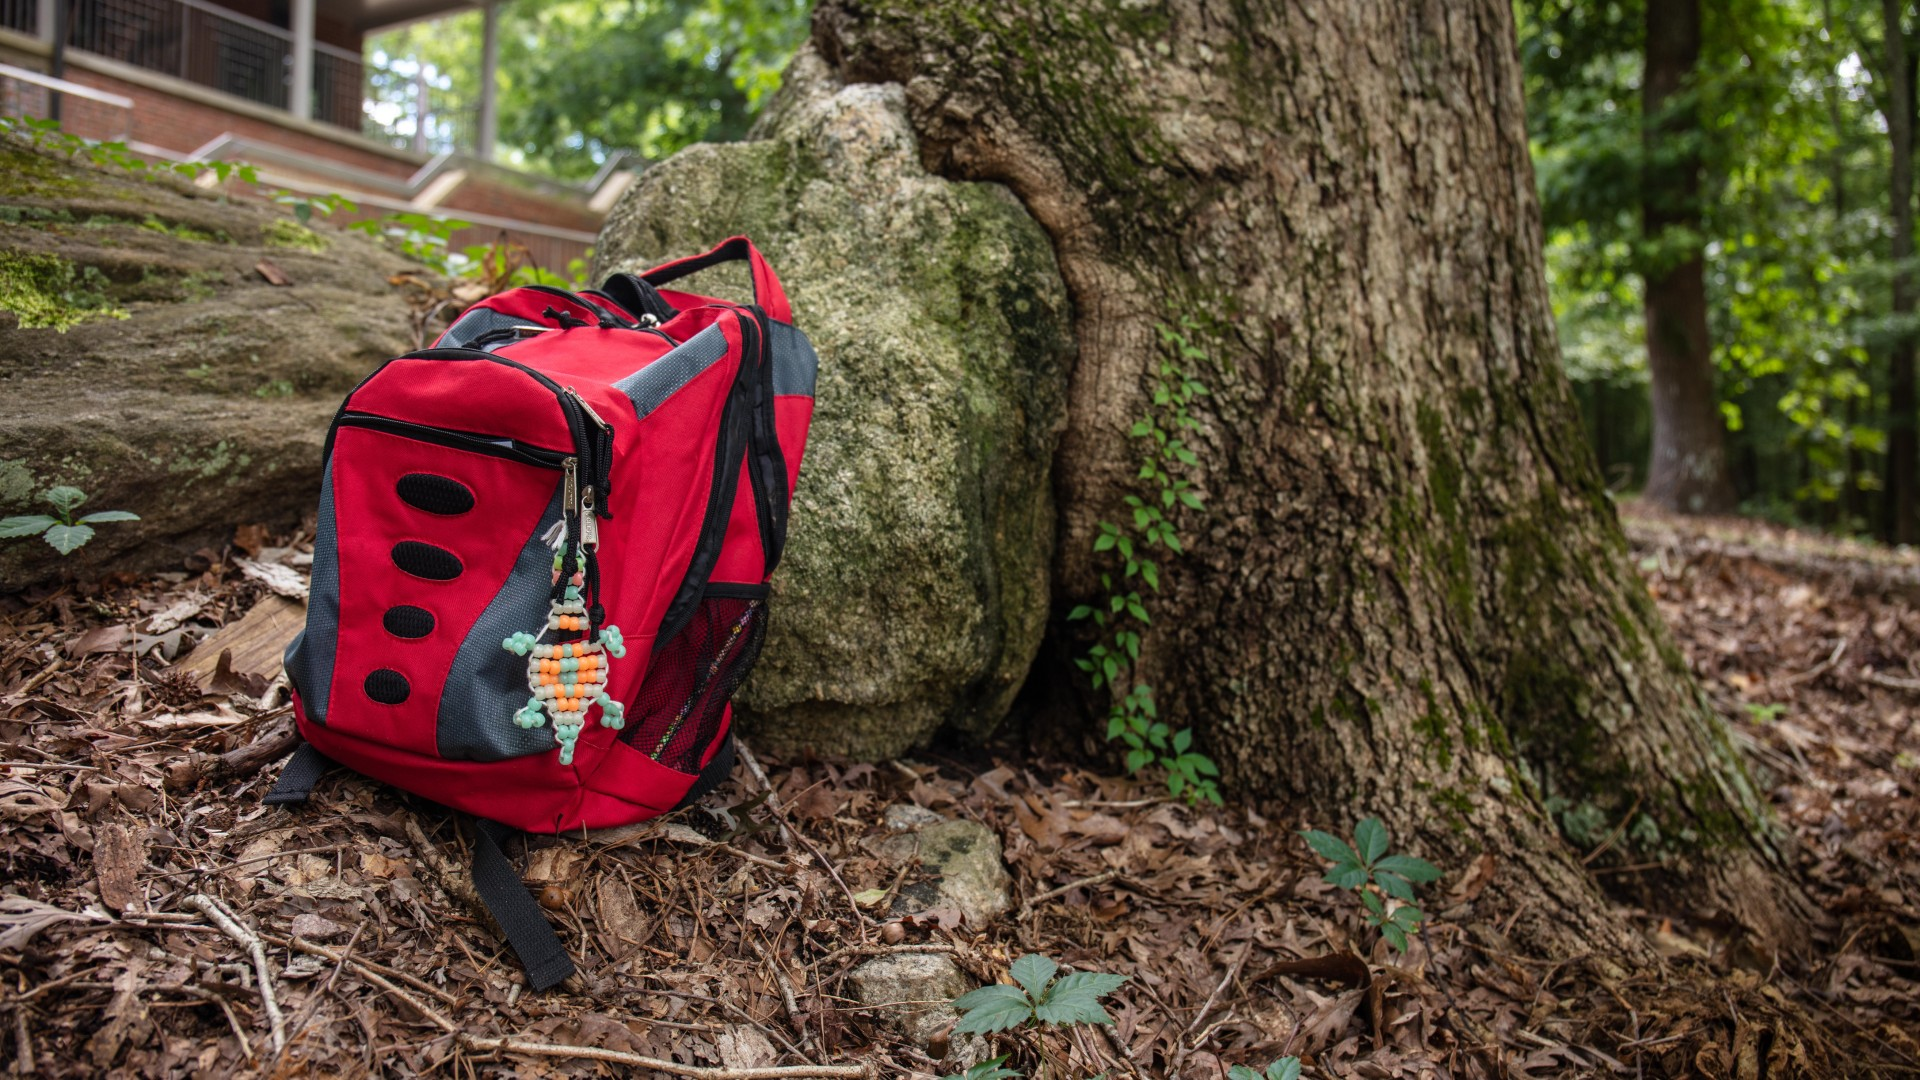 A red discovery backpack sitting up against a tree